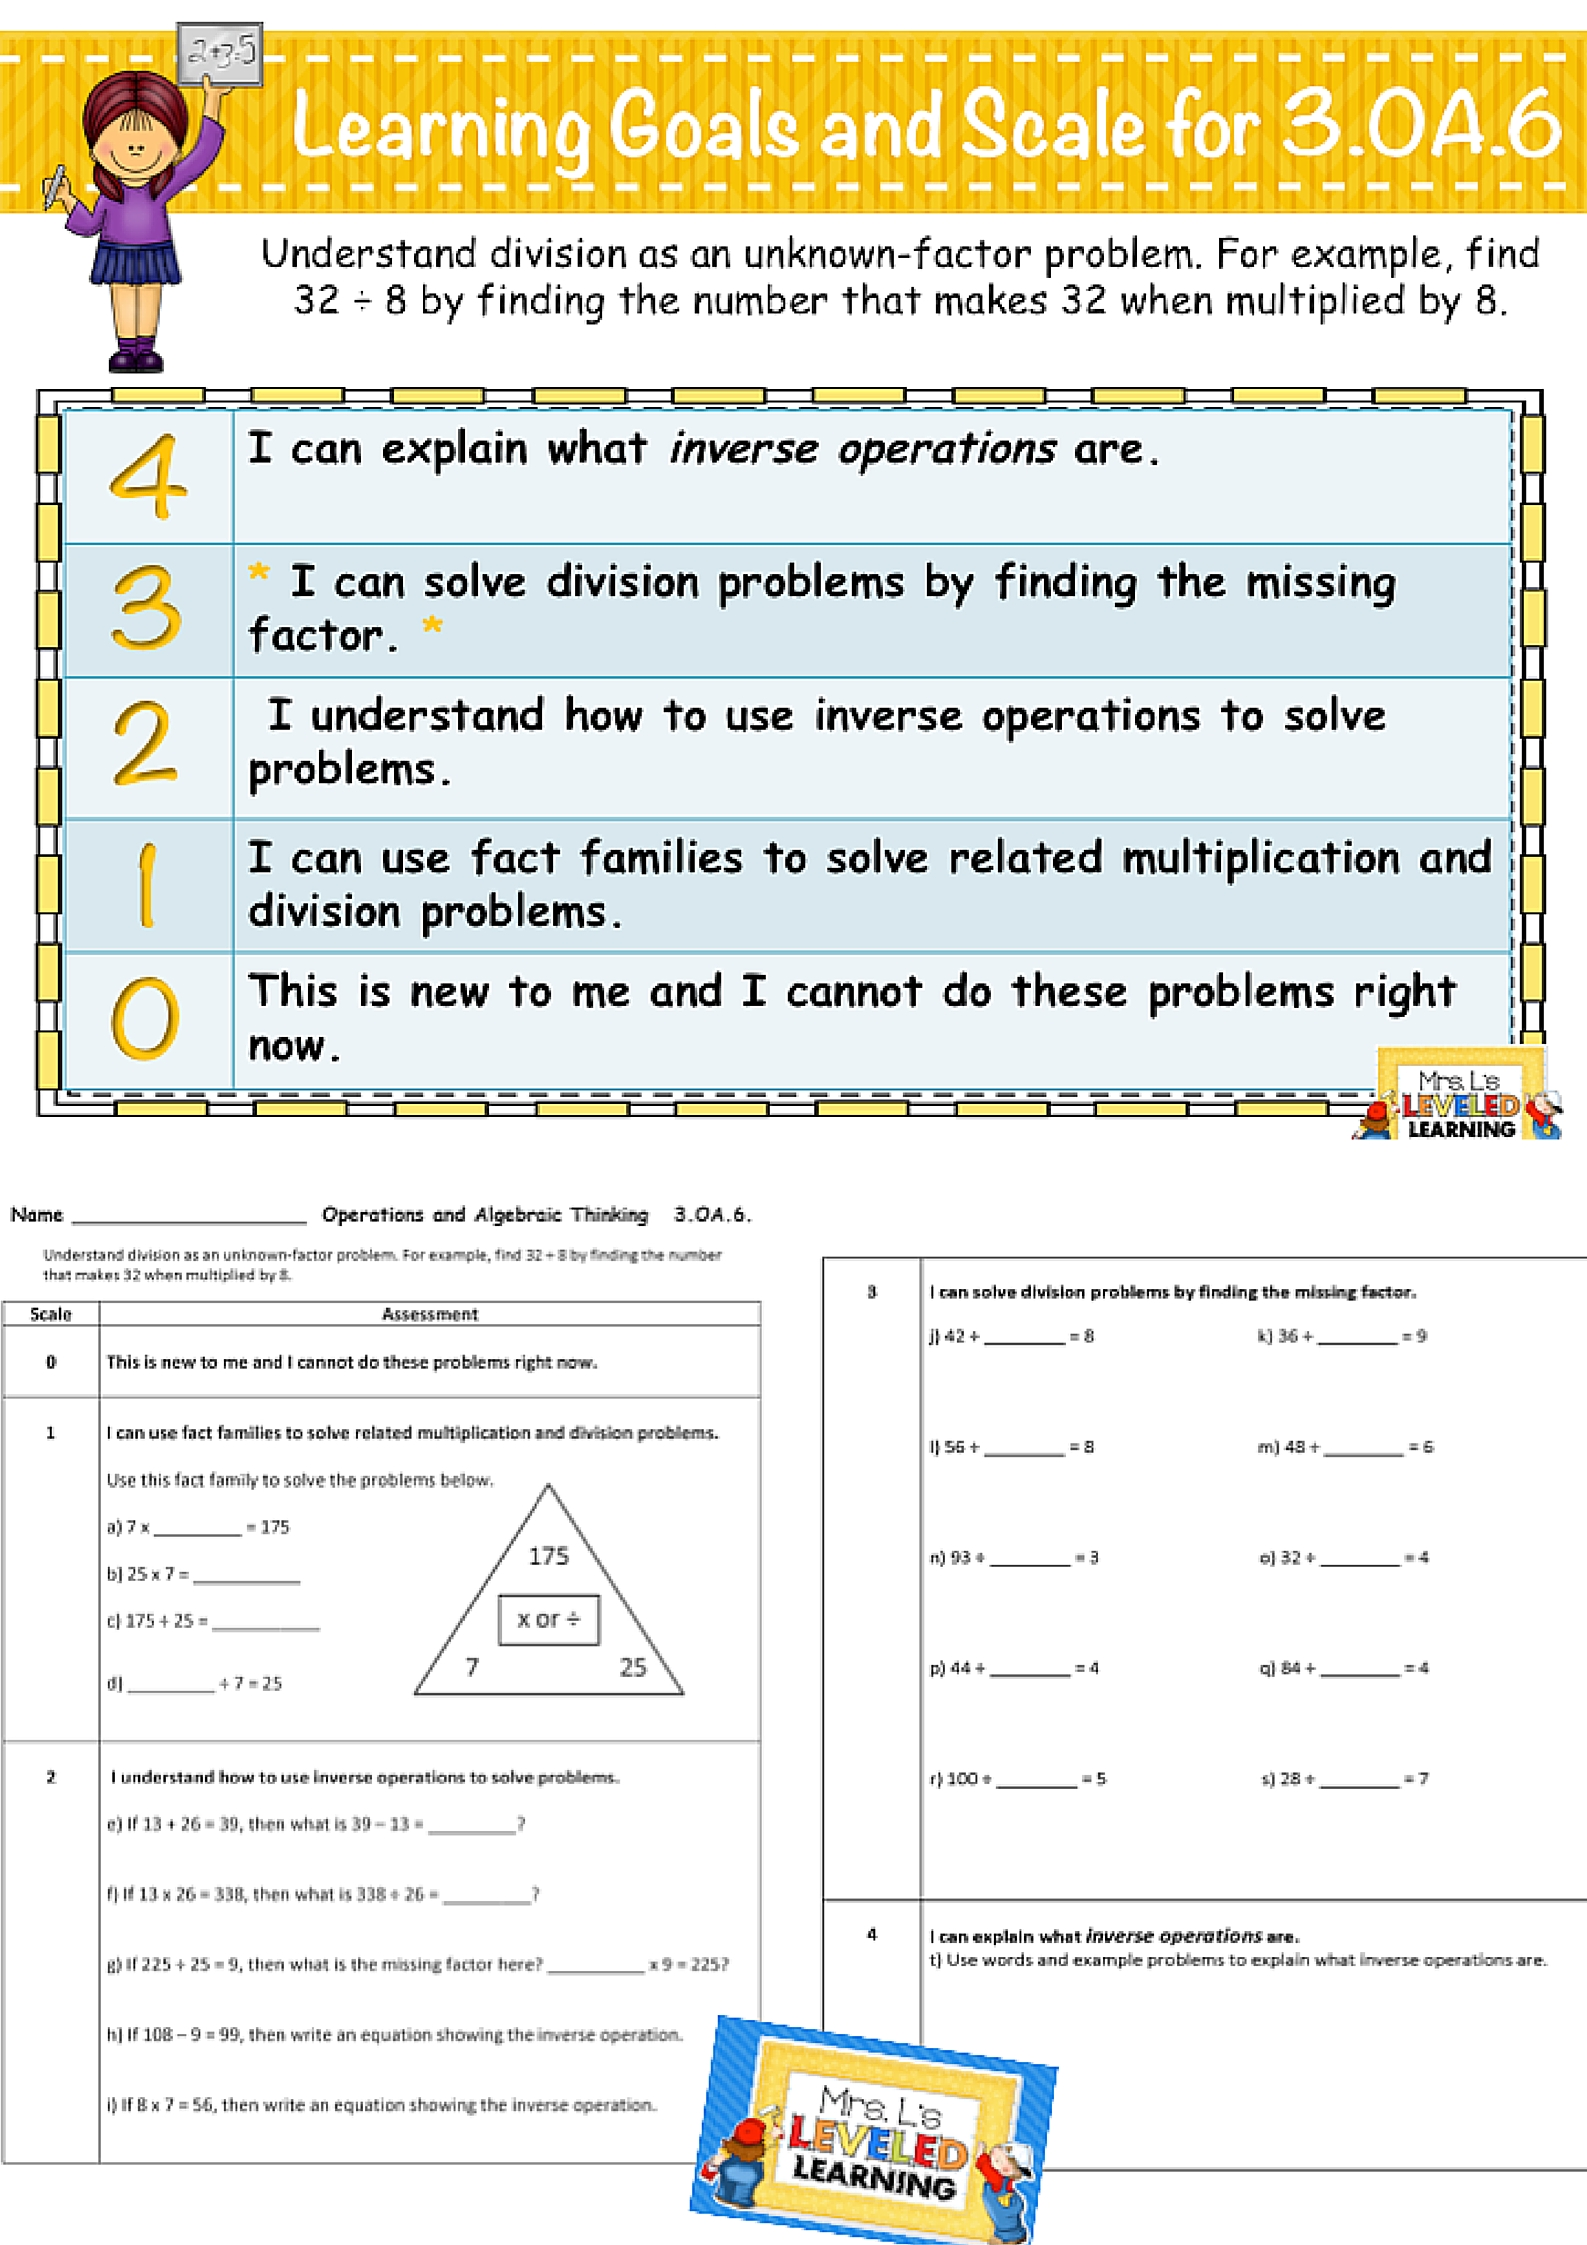 5 Steps to Creating Successful Common Core Scales for Student Learning